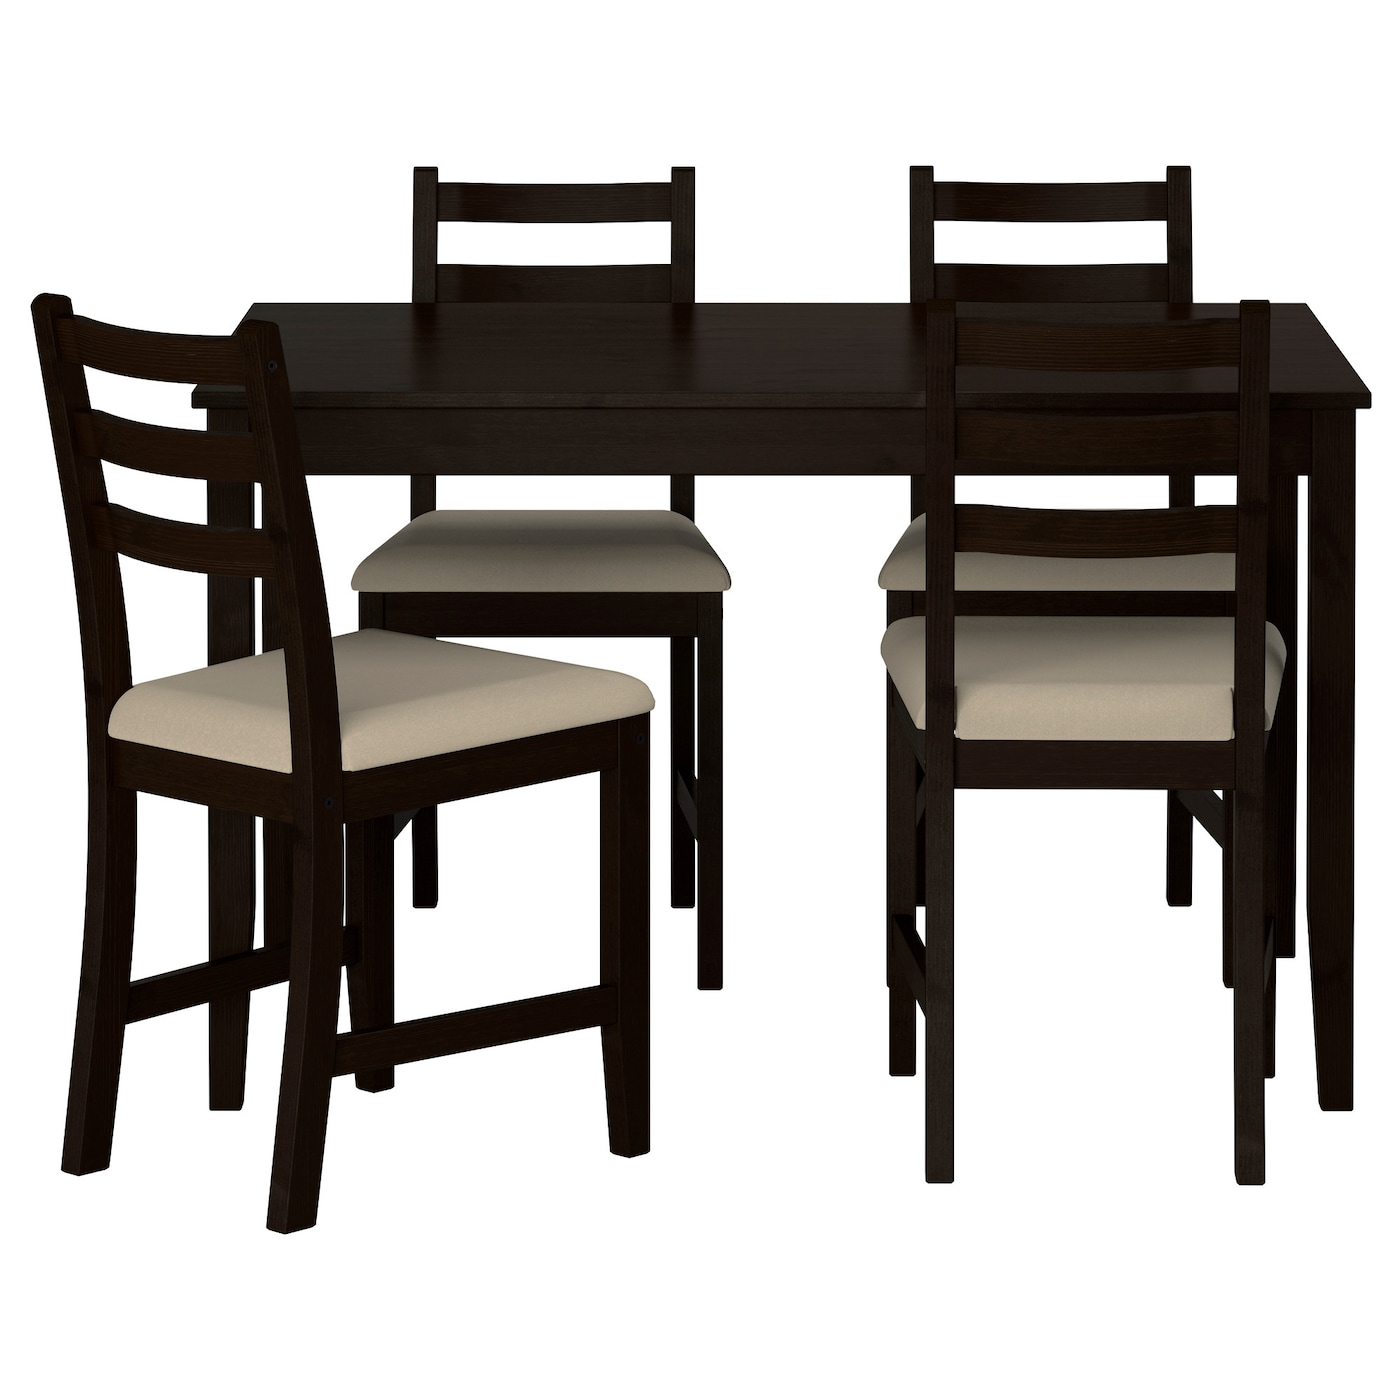 lerhamn table and 4 chairs black brown ramna beige 118x74. Black Bedroom Furniture Sets. Home Design Ideas